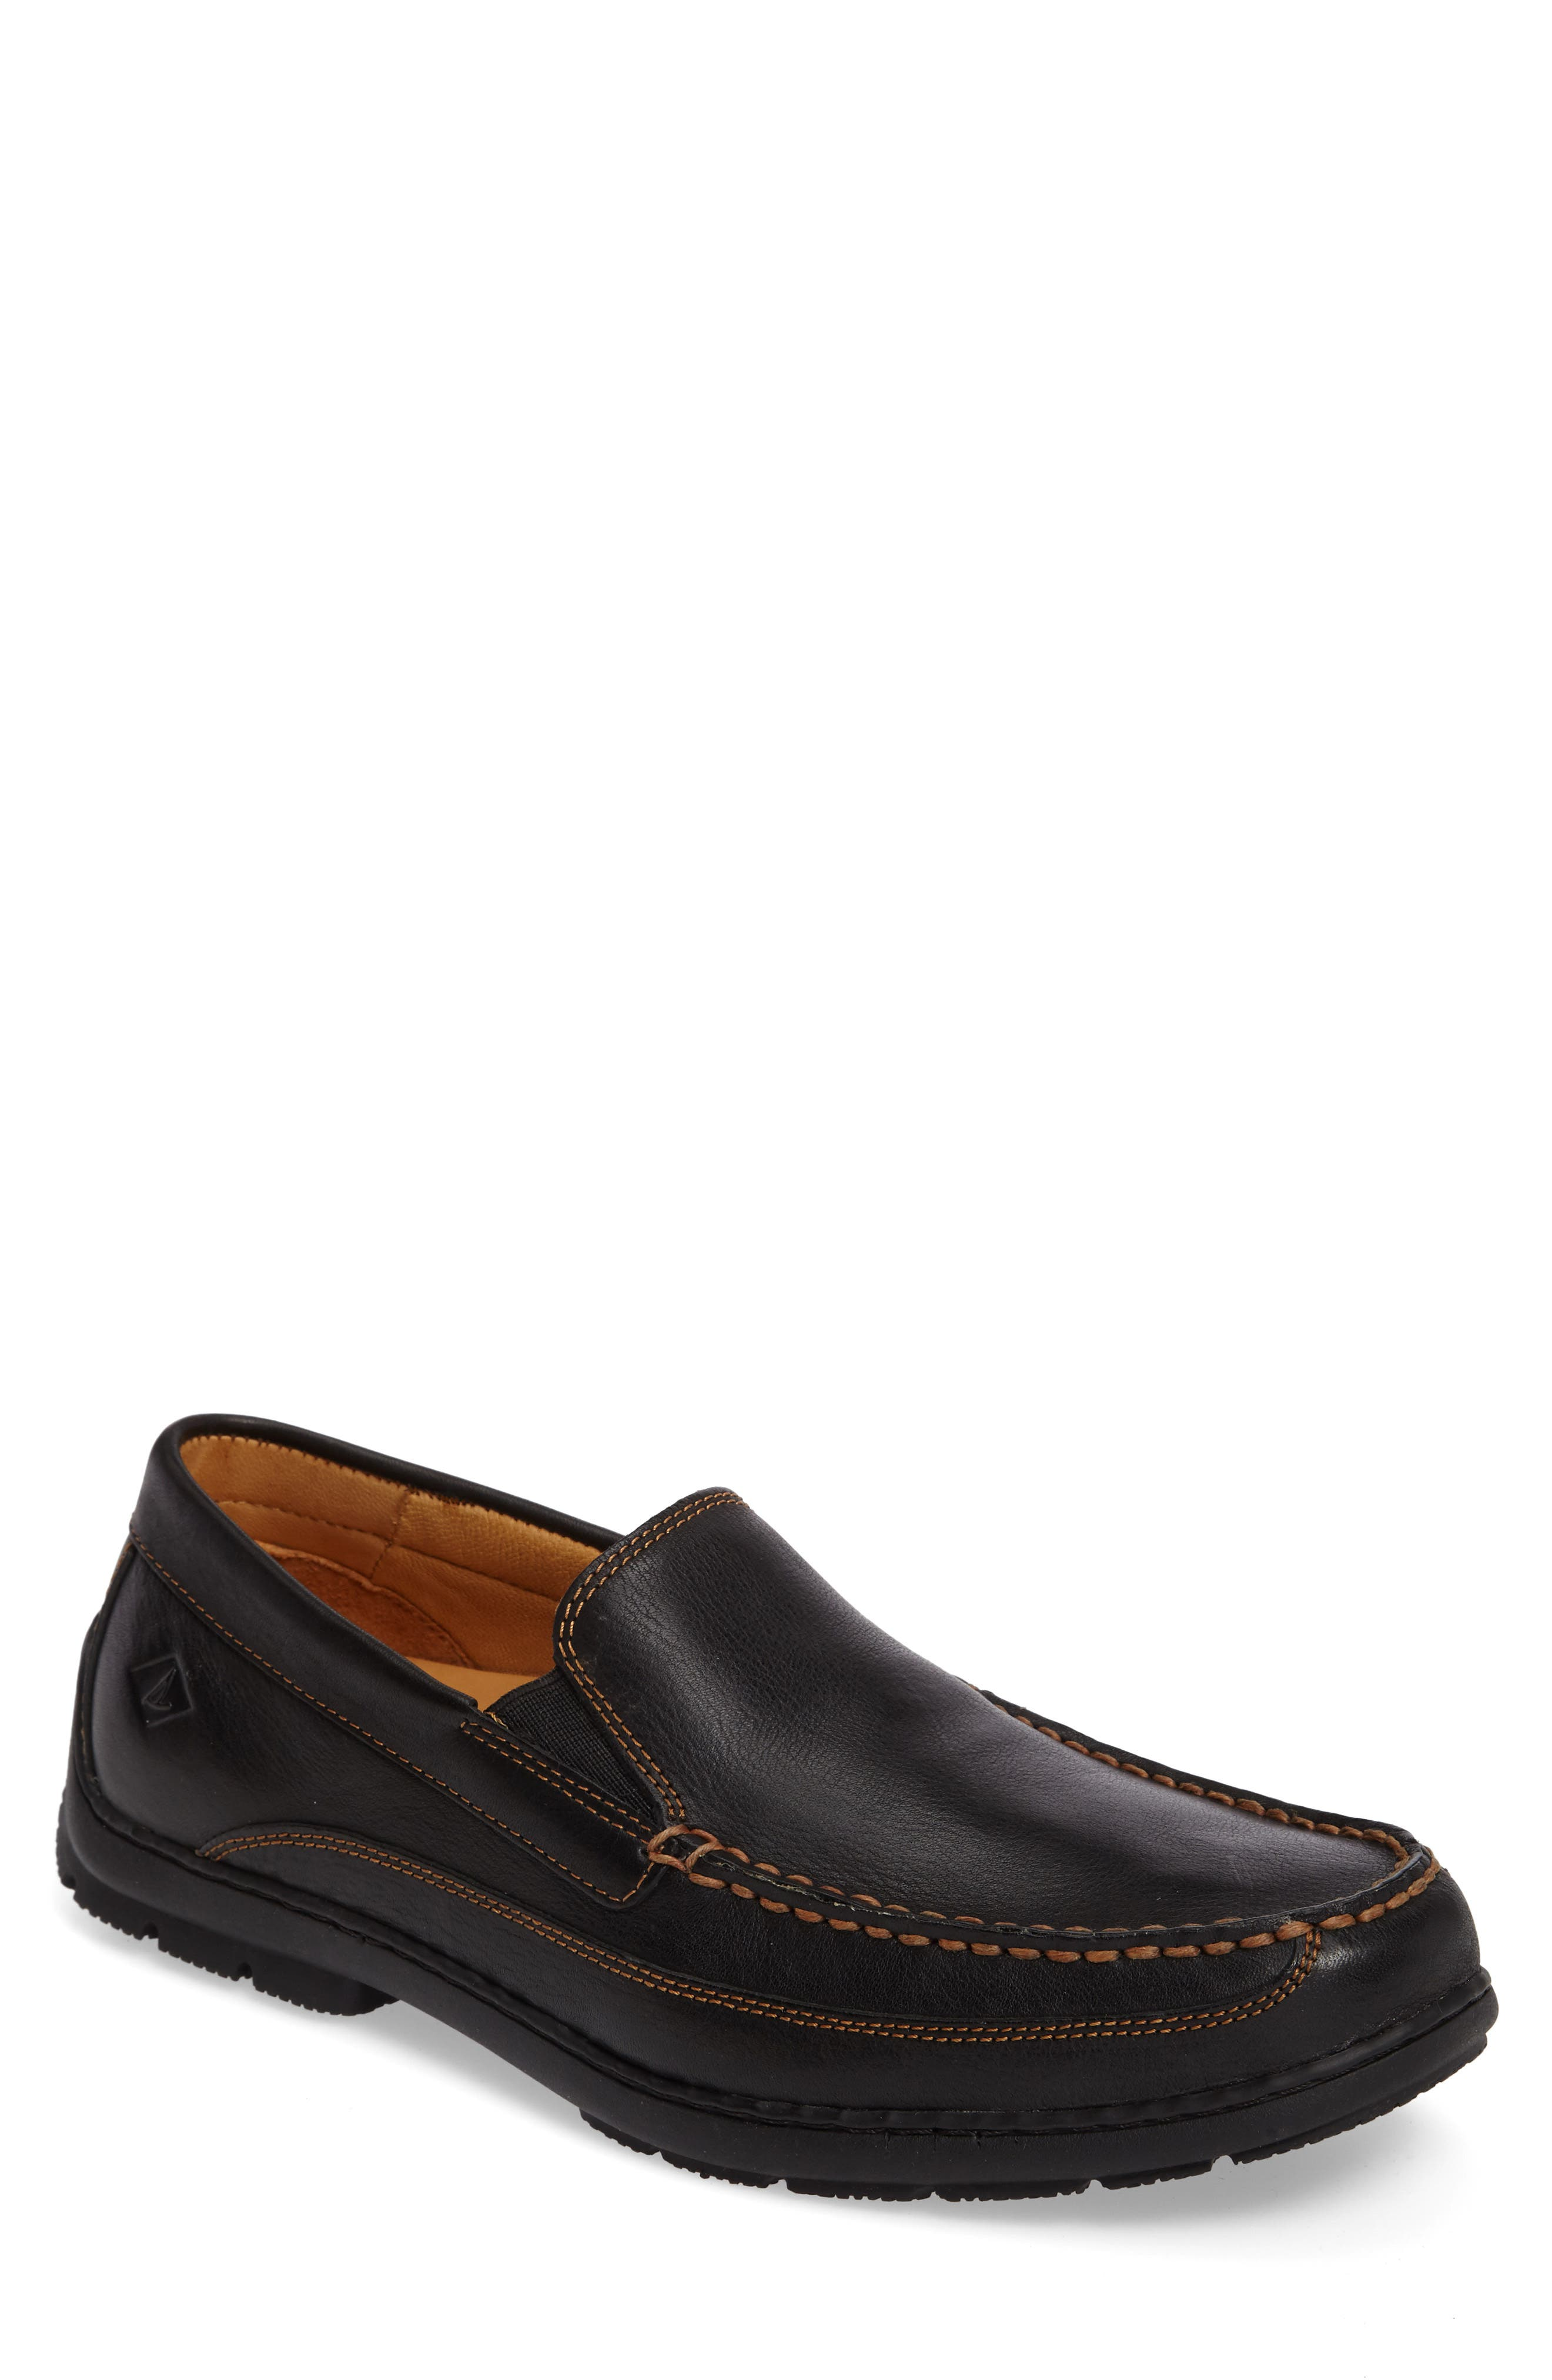 Gold Cup Loafer,                             Main thumbnail 1, color,                             001